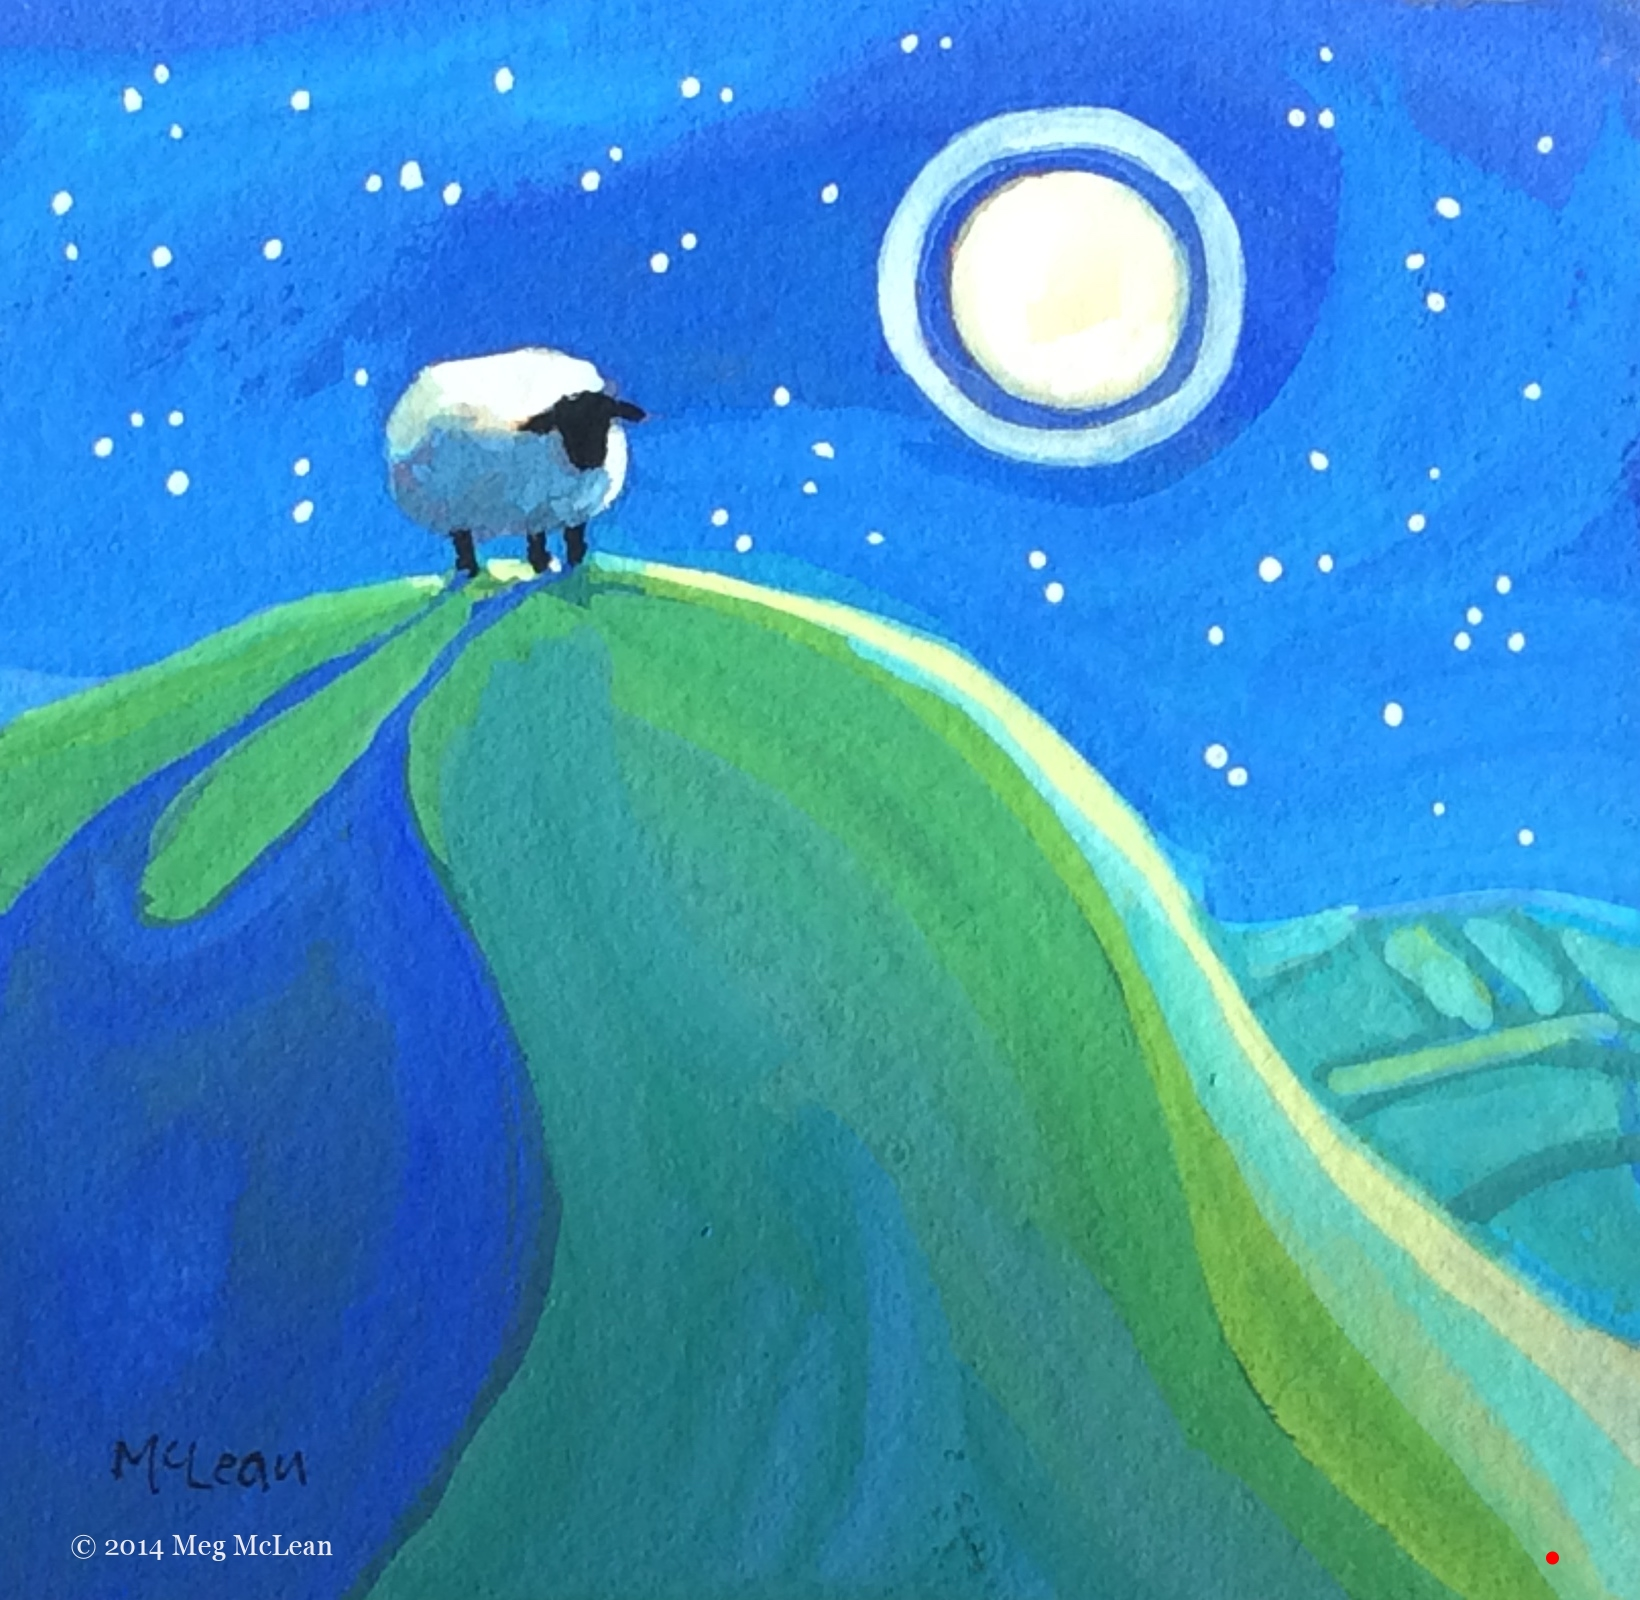 Meg McLean poetic sheep